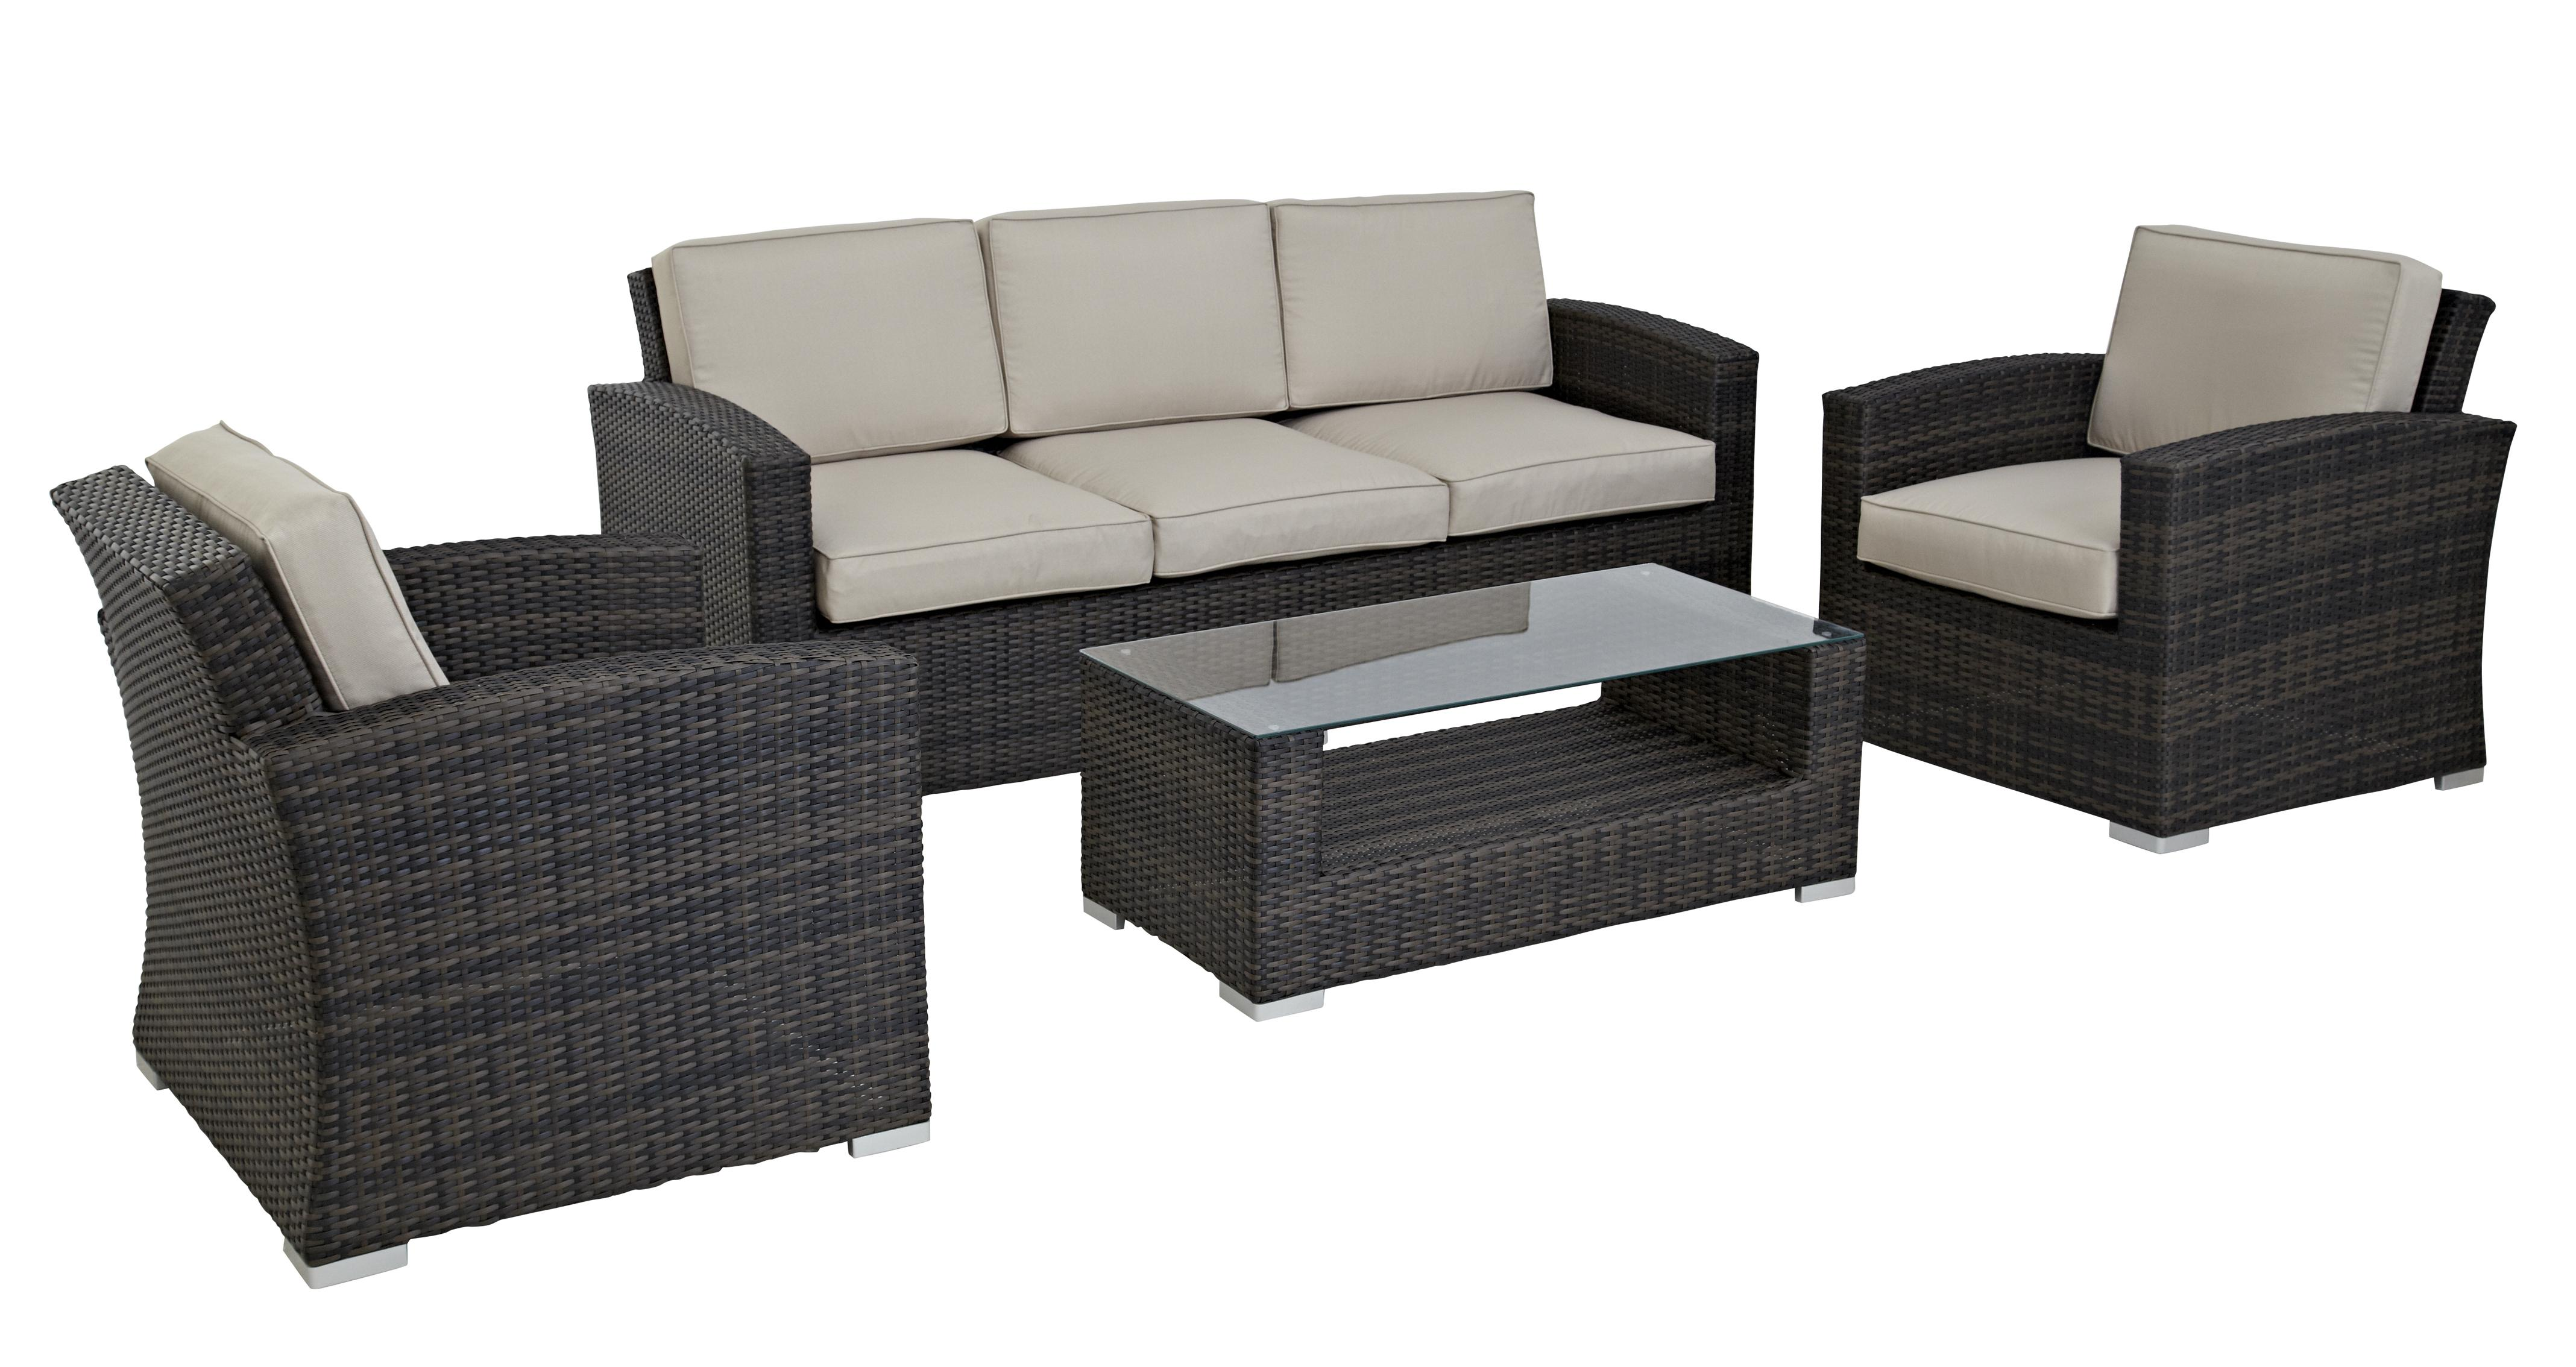 3 seater rattan sofa images for 3 seater sofa